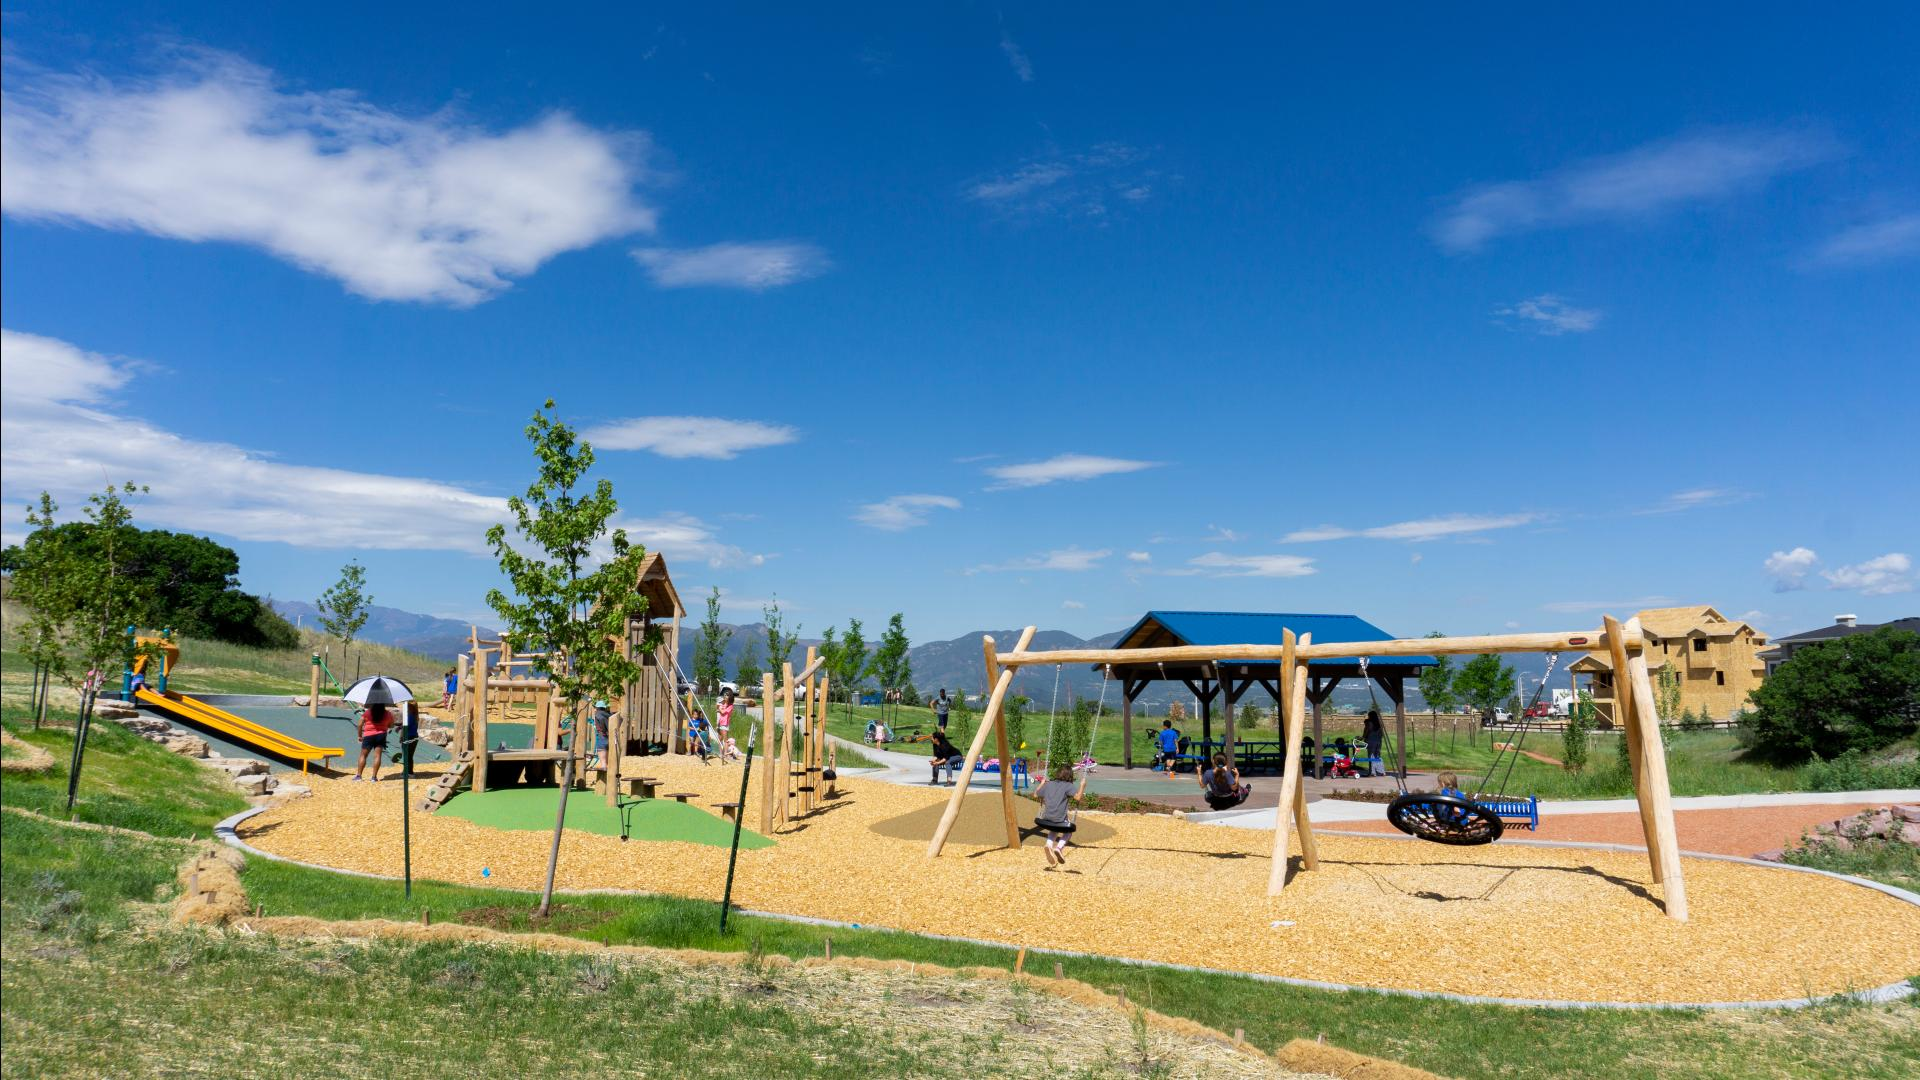 With acres of parks and miles of trails, Cordera offers space to play, exercise or socialize